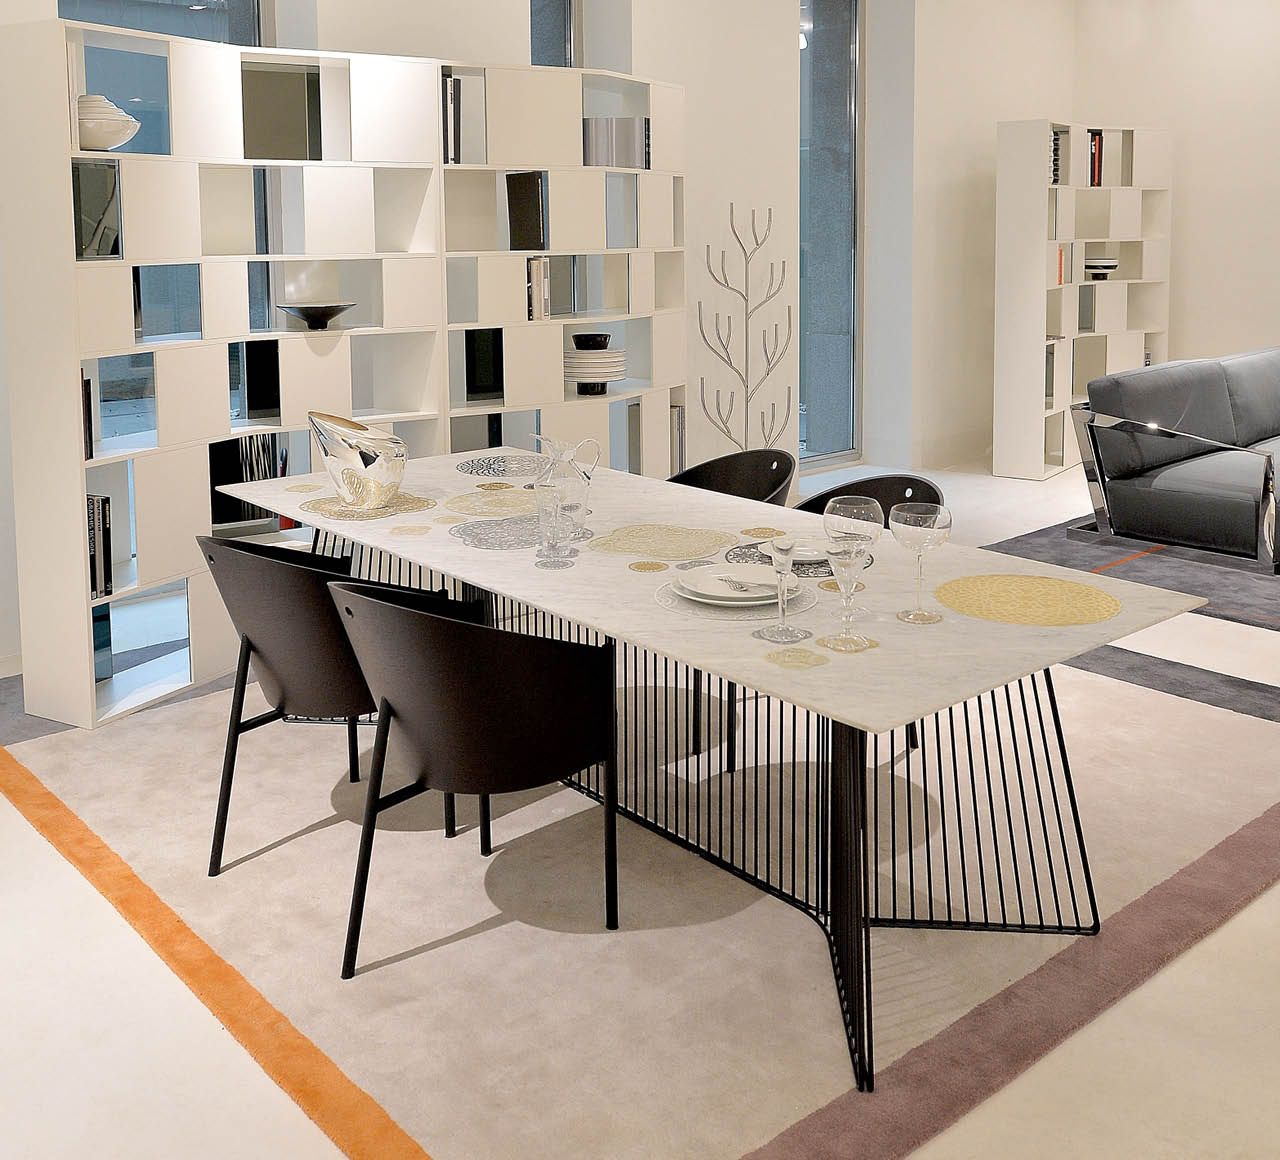 Philippe Starck's Costes Chair for Driade.